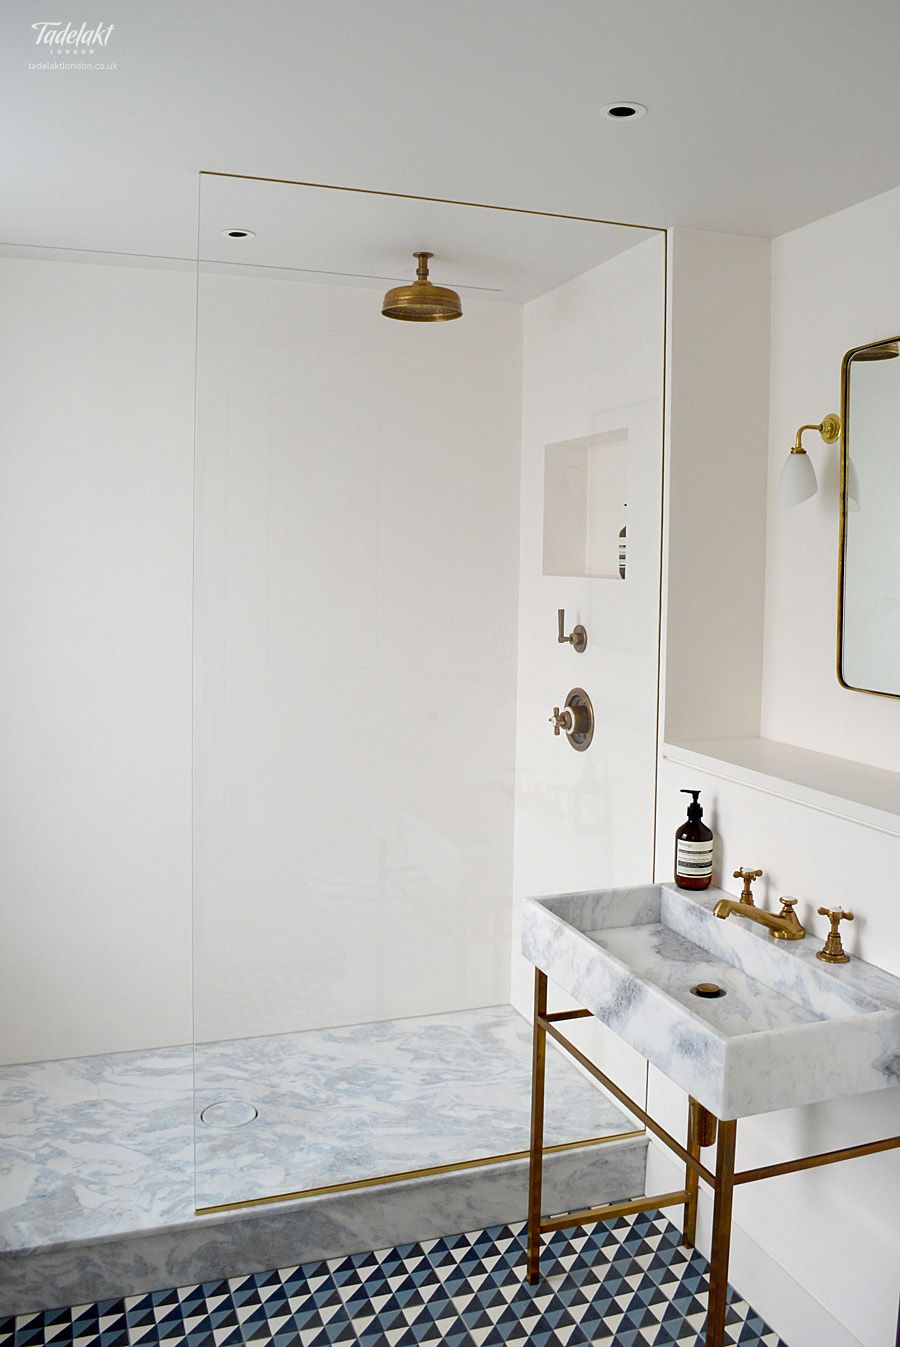 tadelakt in natural white in shower room - alternative to using